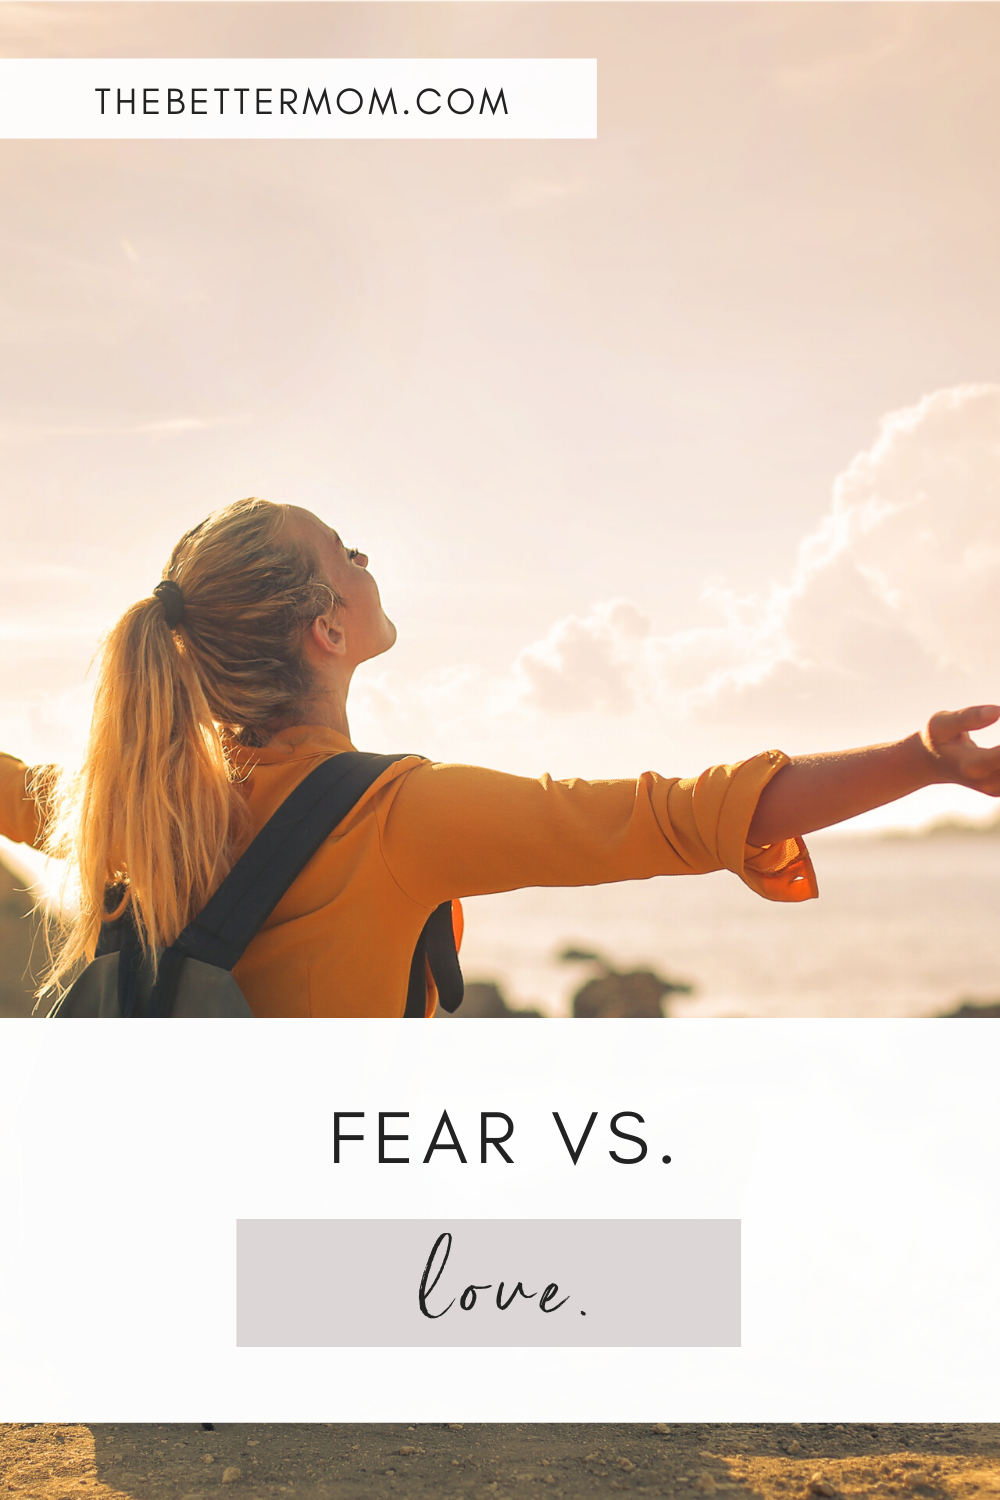 Fear suffocates us and tells us lies, while Love protects and frees us. Each day, we have a choice to choose love over fear. Join me in letting love guide us!